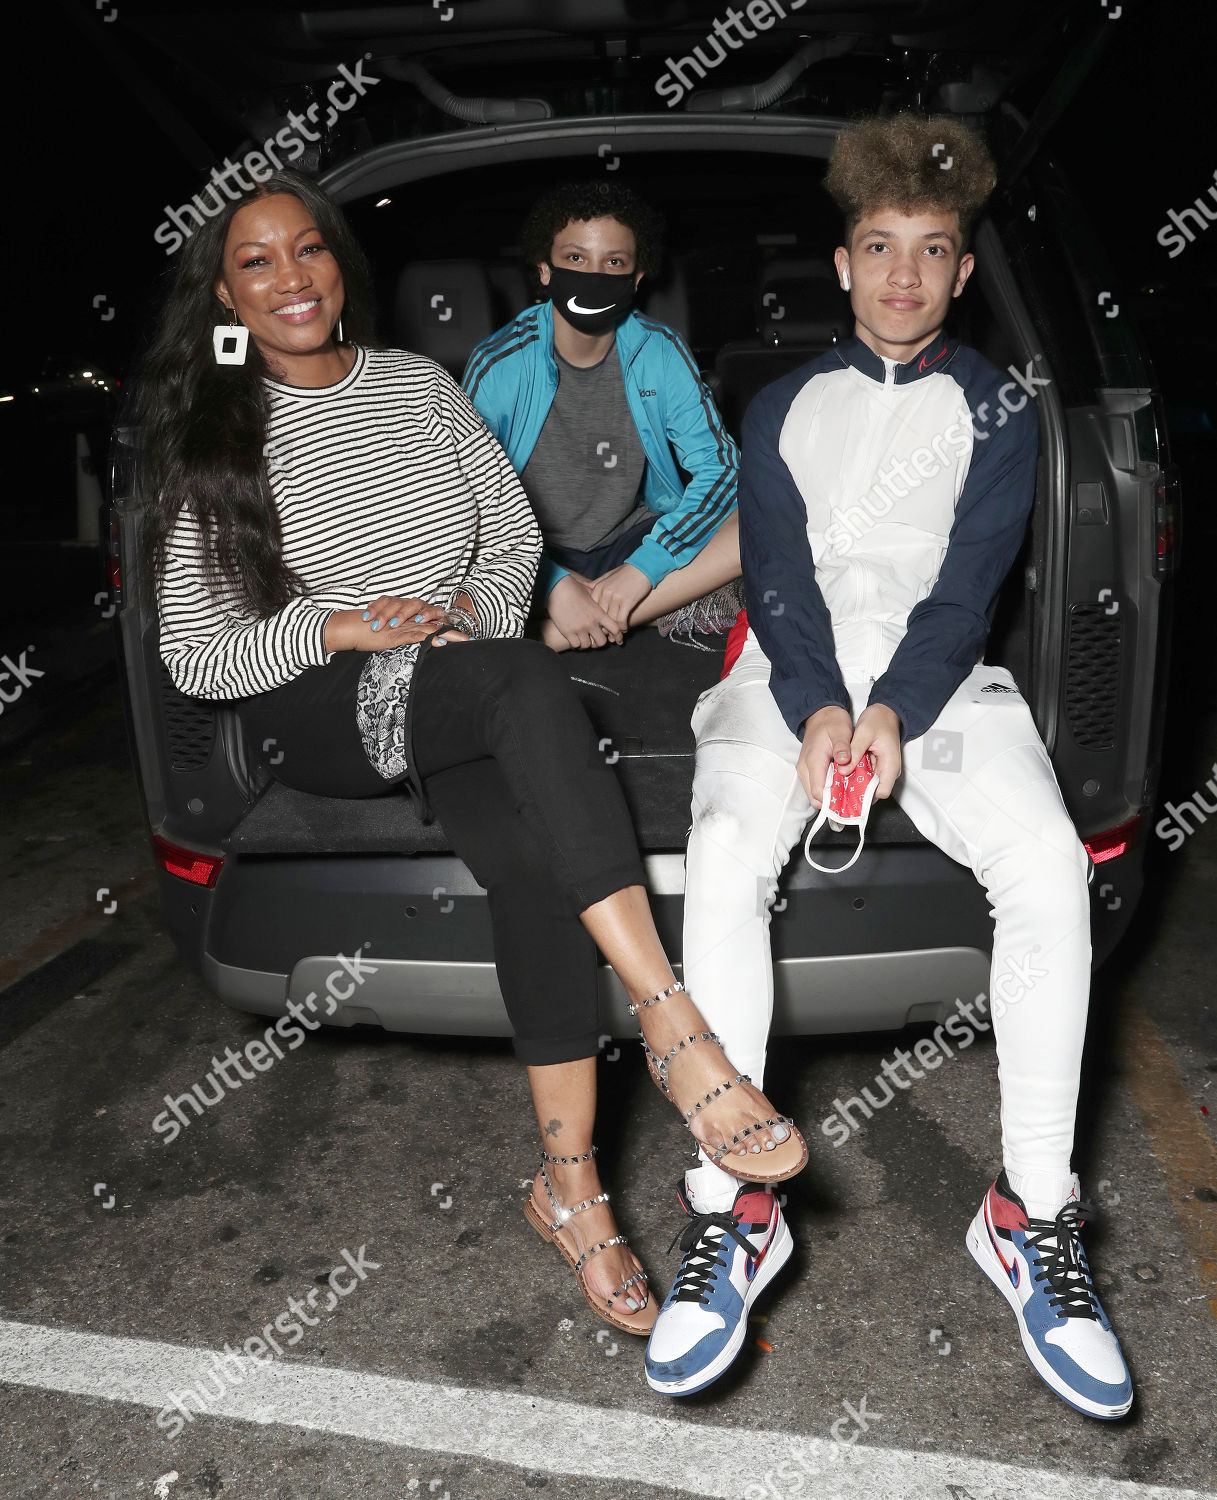 Stock photo of Amazon Studios and Outlier Society present 'A Night at the Drive-in' Closing Night, Los Angeles, USA - 26 Aug 2020